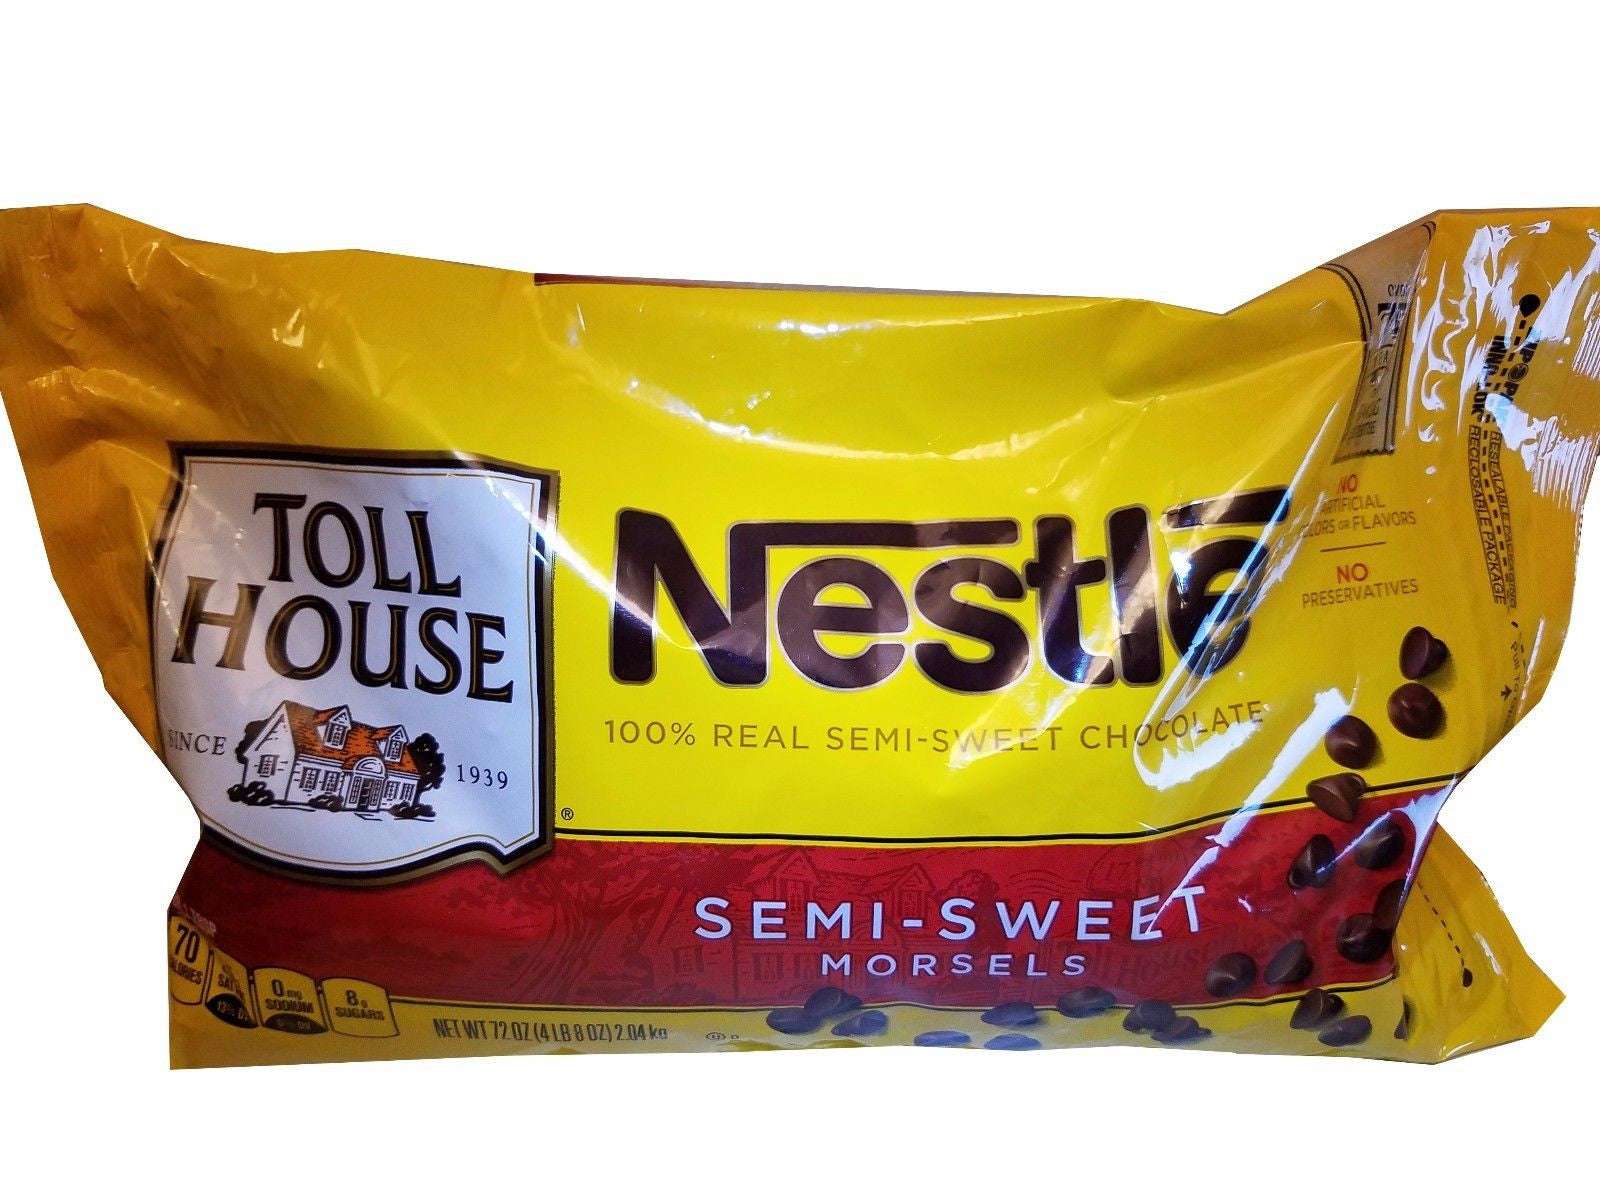 Nestle Toll House 100% Real Semi-Sweet Chocolate Morsels 4.5 LB (72 oz)